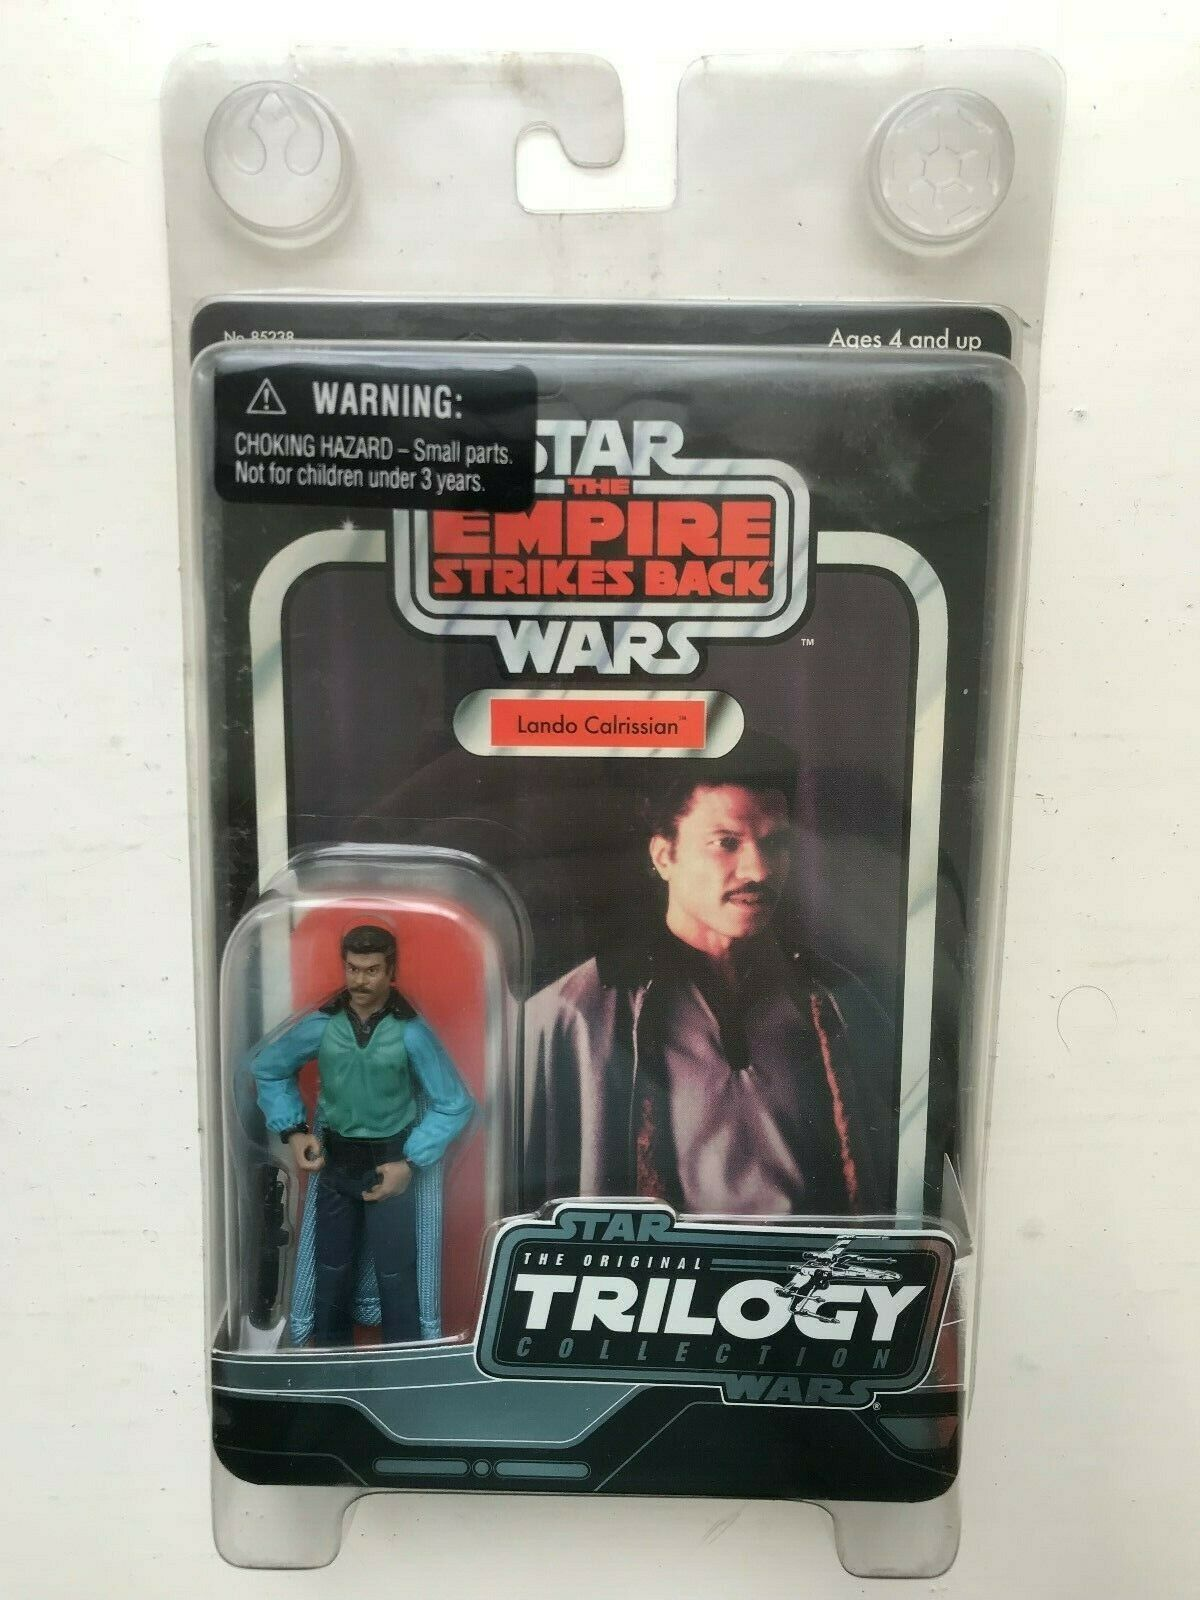 STAR WARS THE TRILOGY COLLECTION LANDO CALRISSIAN EMPIRE STRIKES BACK FIGURE